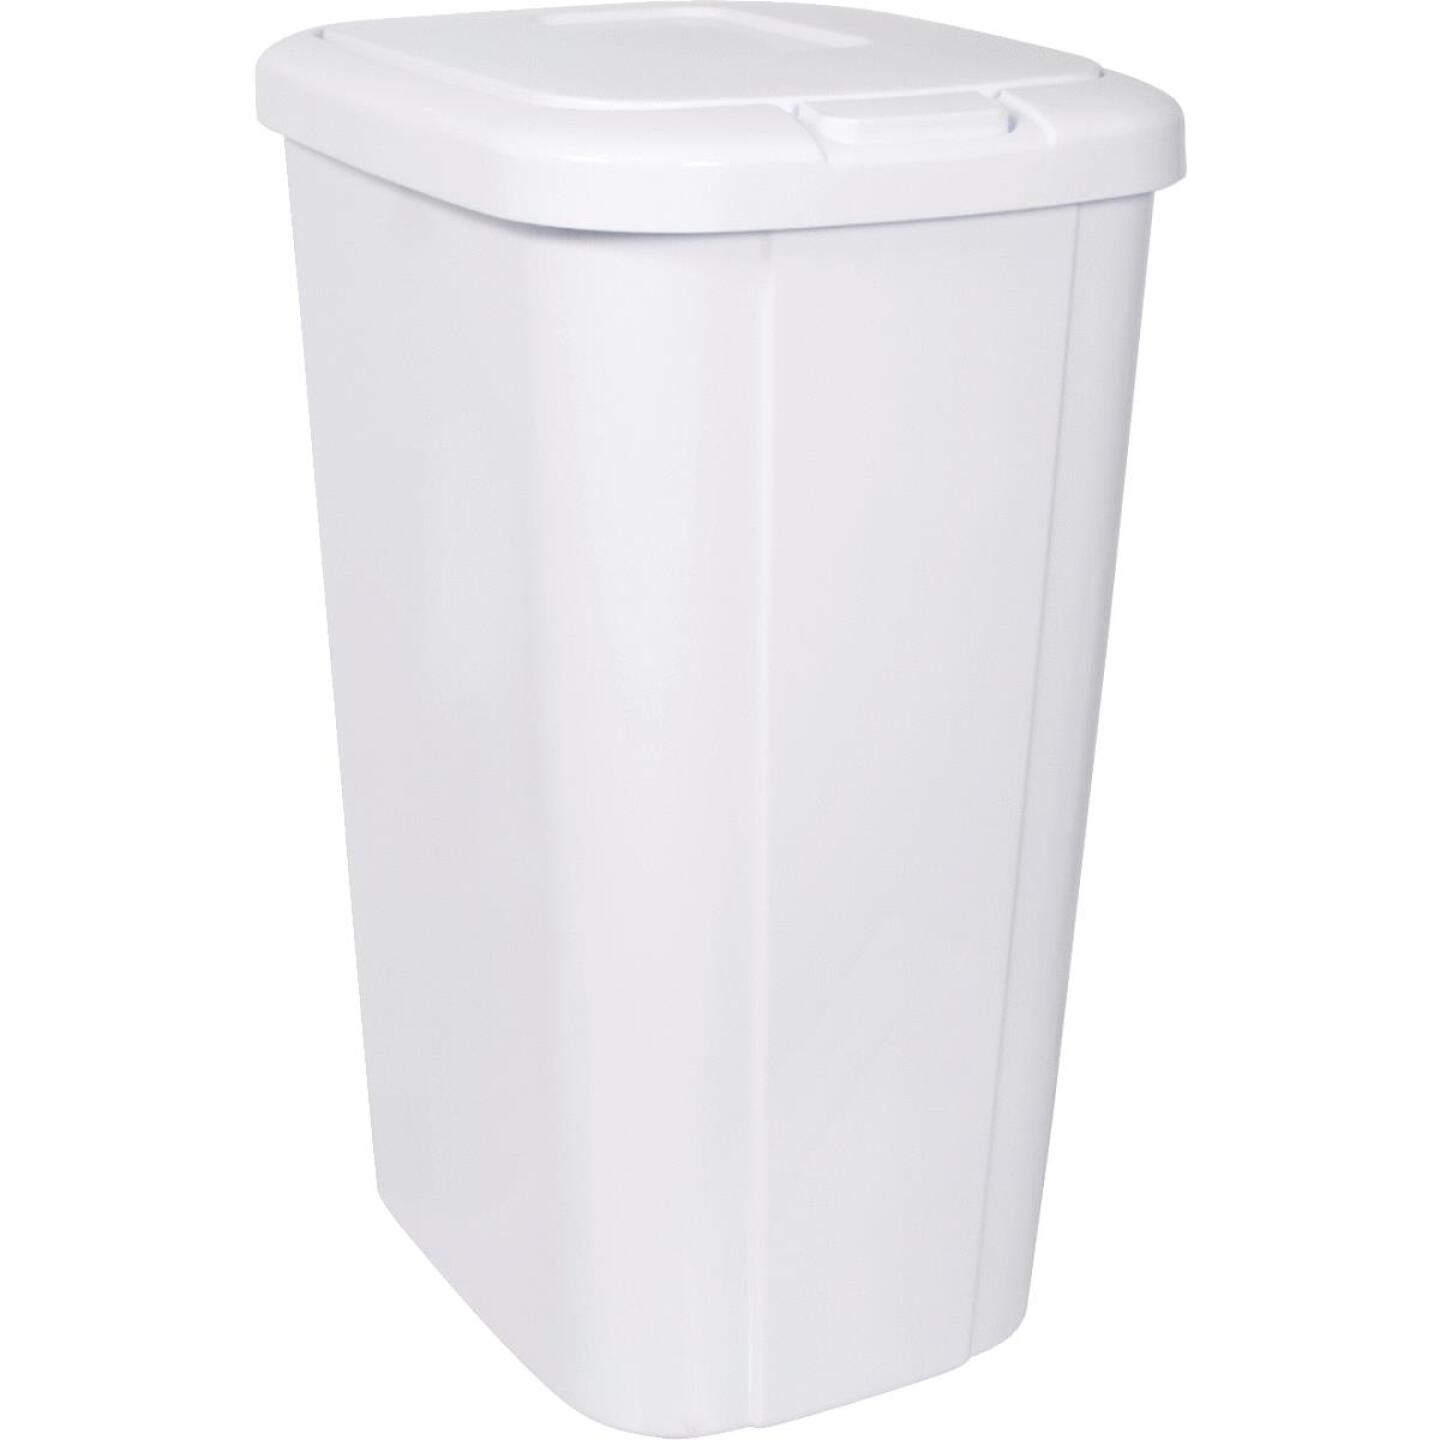 Hefty 53 Qt. White Wastebasket with Lid Image 1